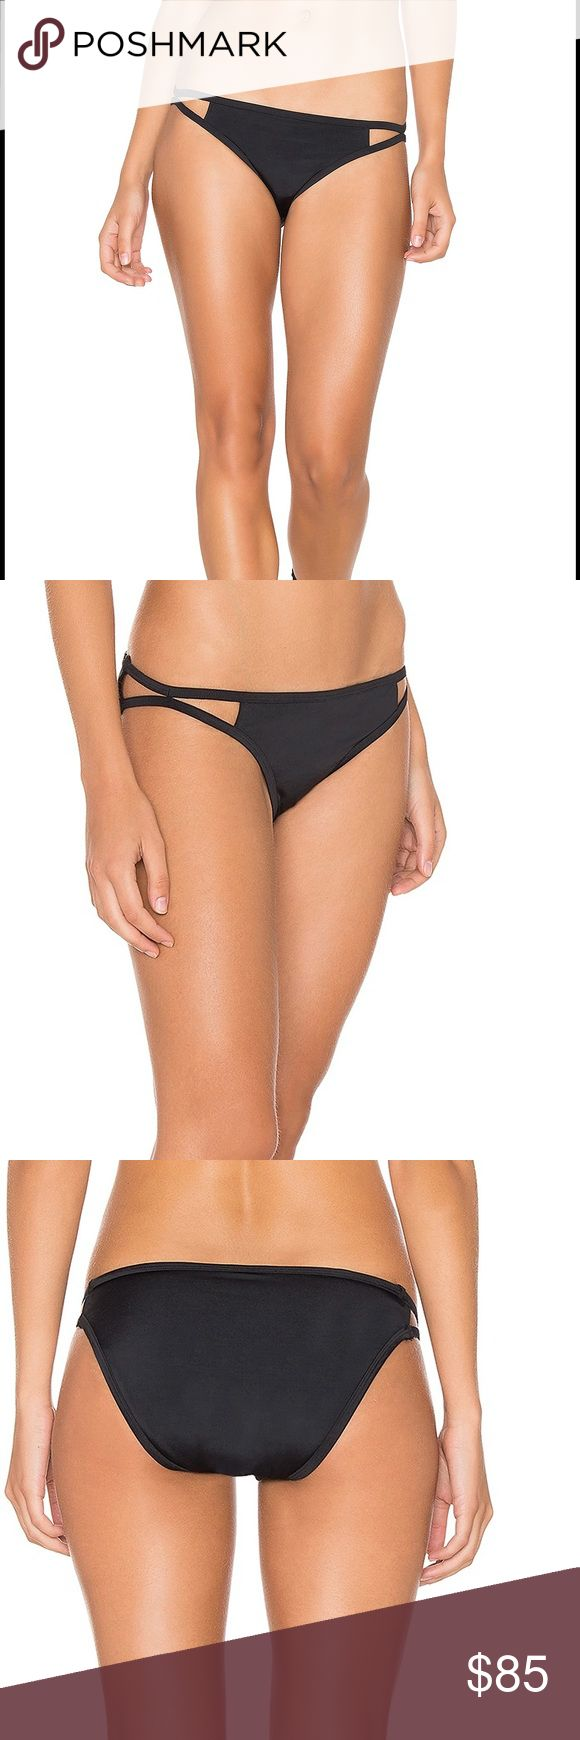 LONELY Black Cut-Out Bikini Bottom Lonely has created a look that is chic and feminine while focusing on wearability and functionality. I fell in love with the design of this bikini bottom when I saw it! Self: 85% nylon , 15% spandex Contrast: 88% nylon , 12% elastane Hand wash cold Color - Black Lonely Swim Bikinis